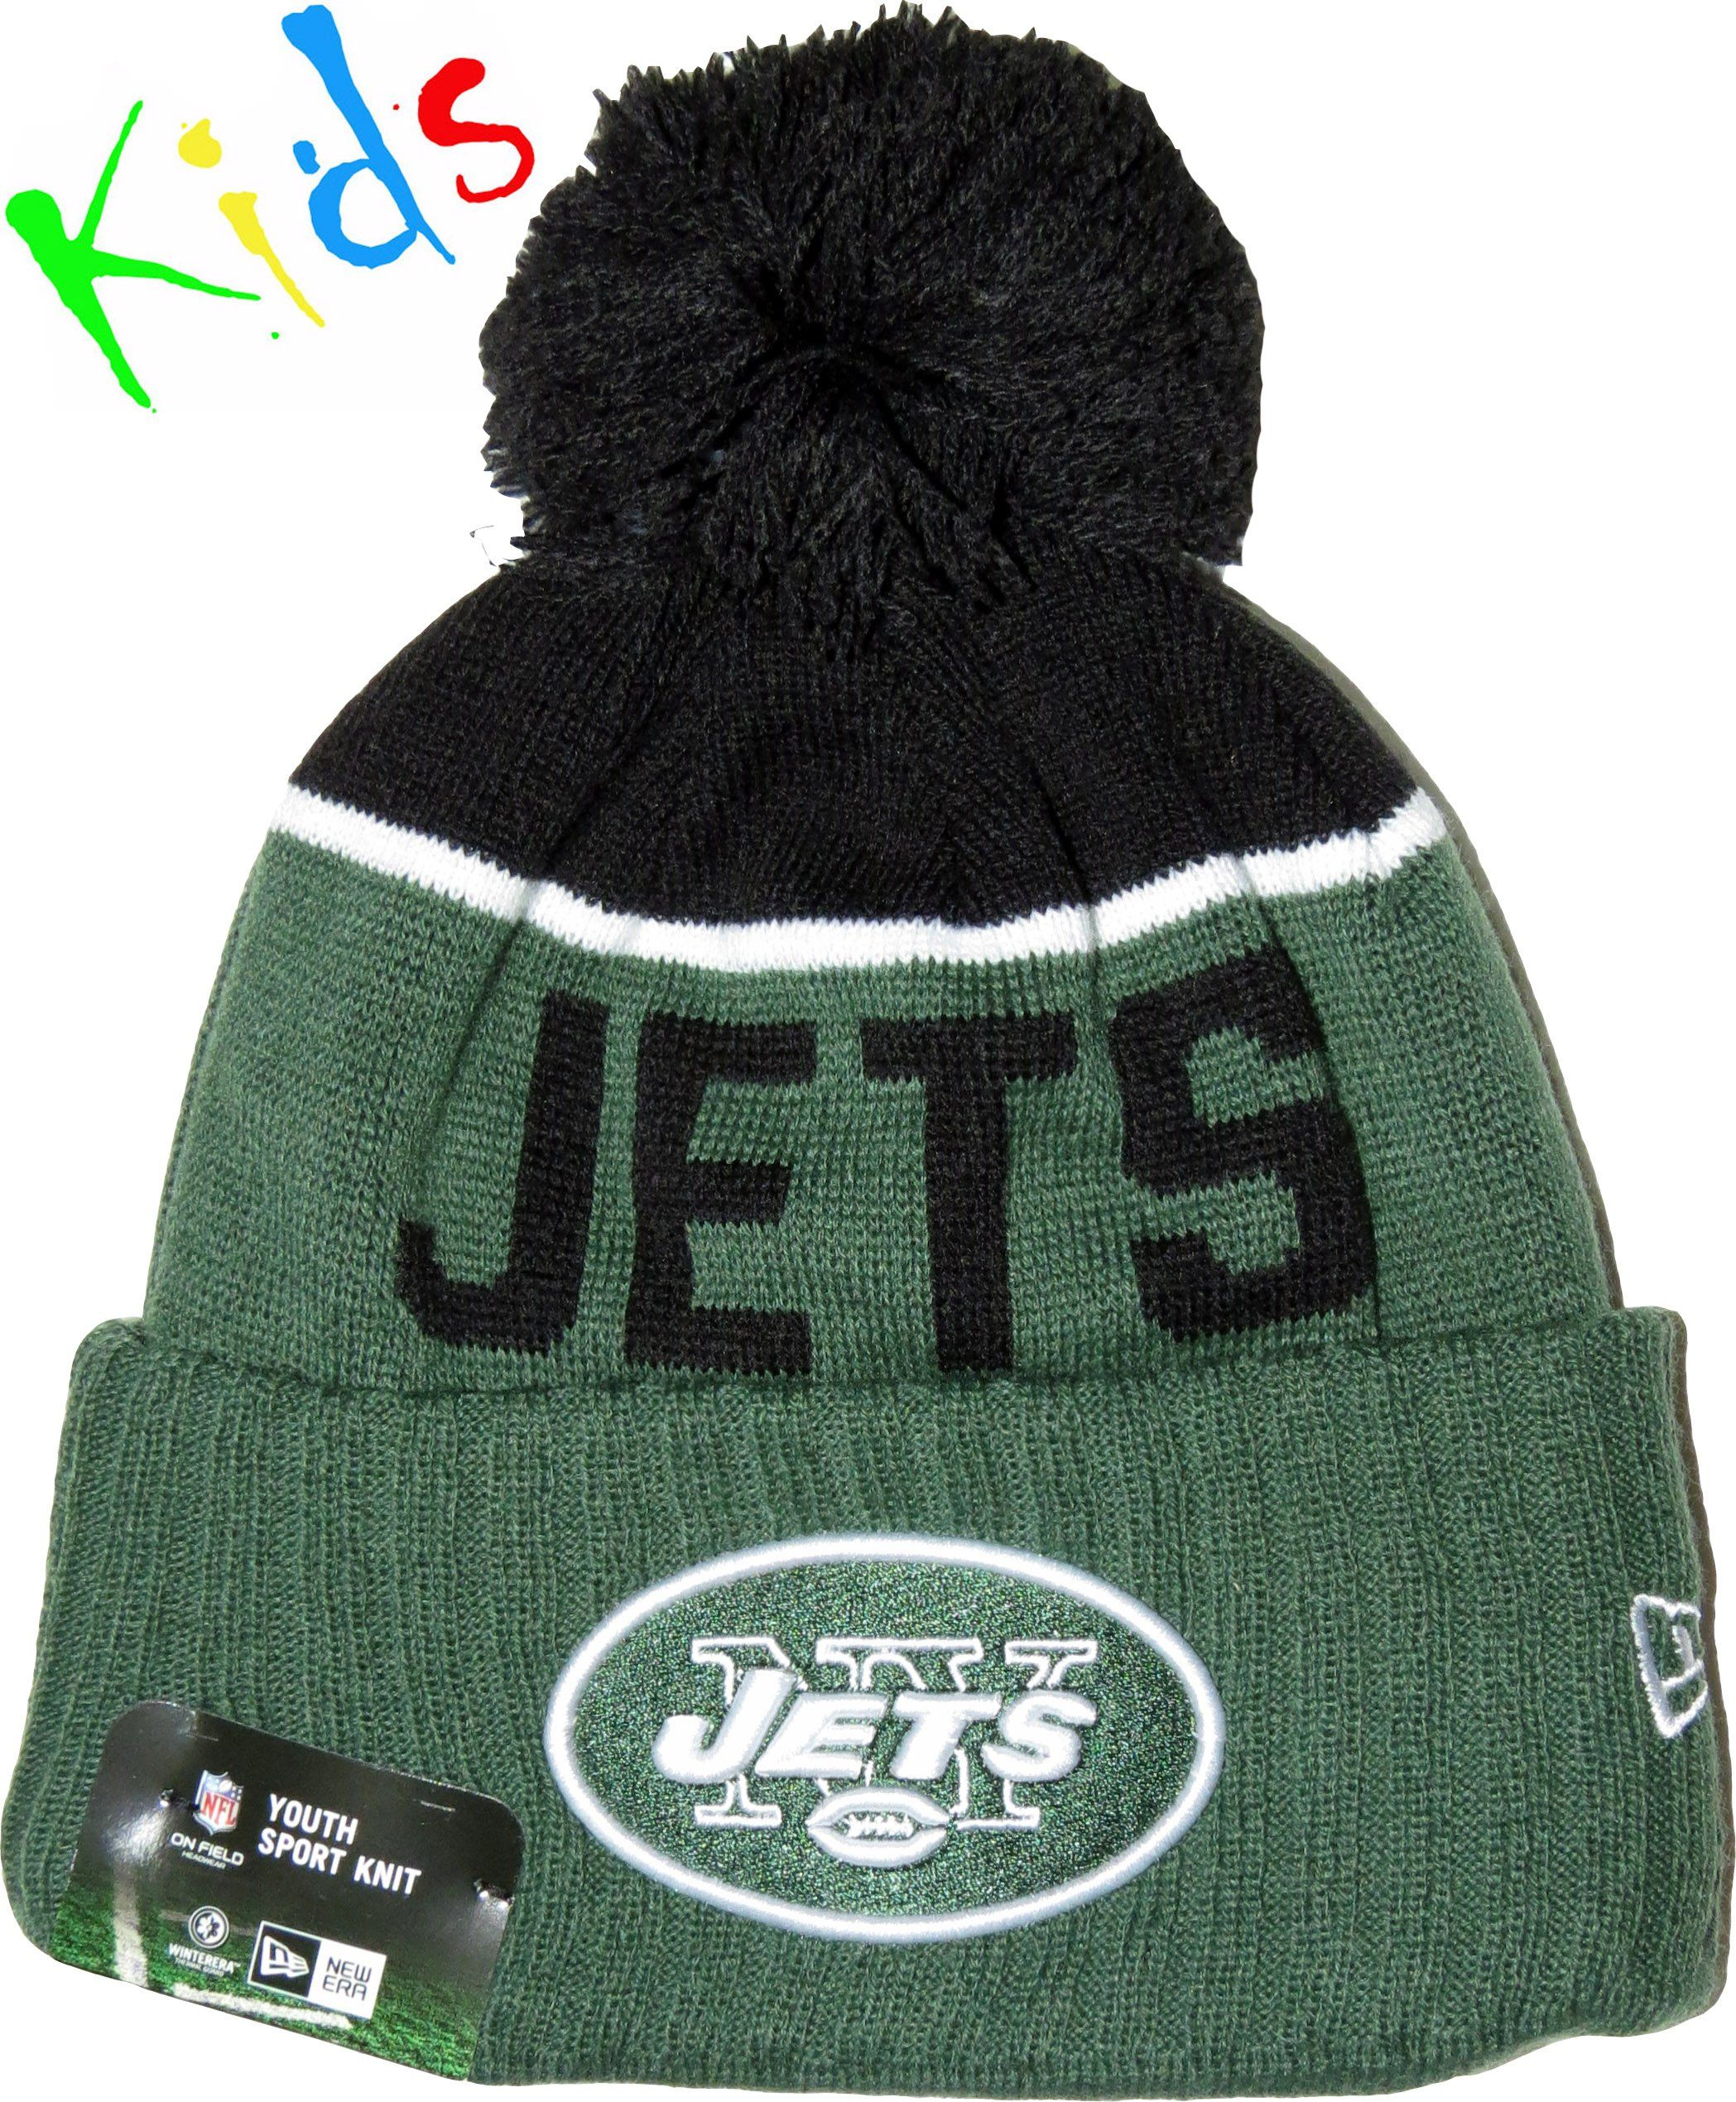 e6cc0858069 New Era Kids NFL Sport Knit Bobble Hat. Green with the New York Jets ...